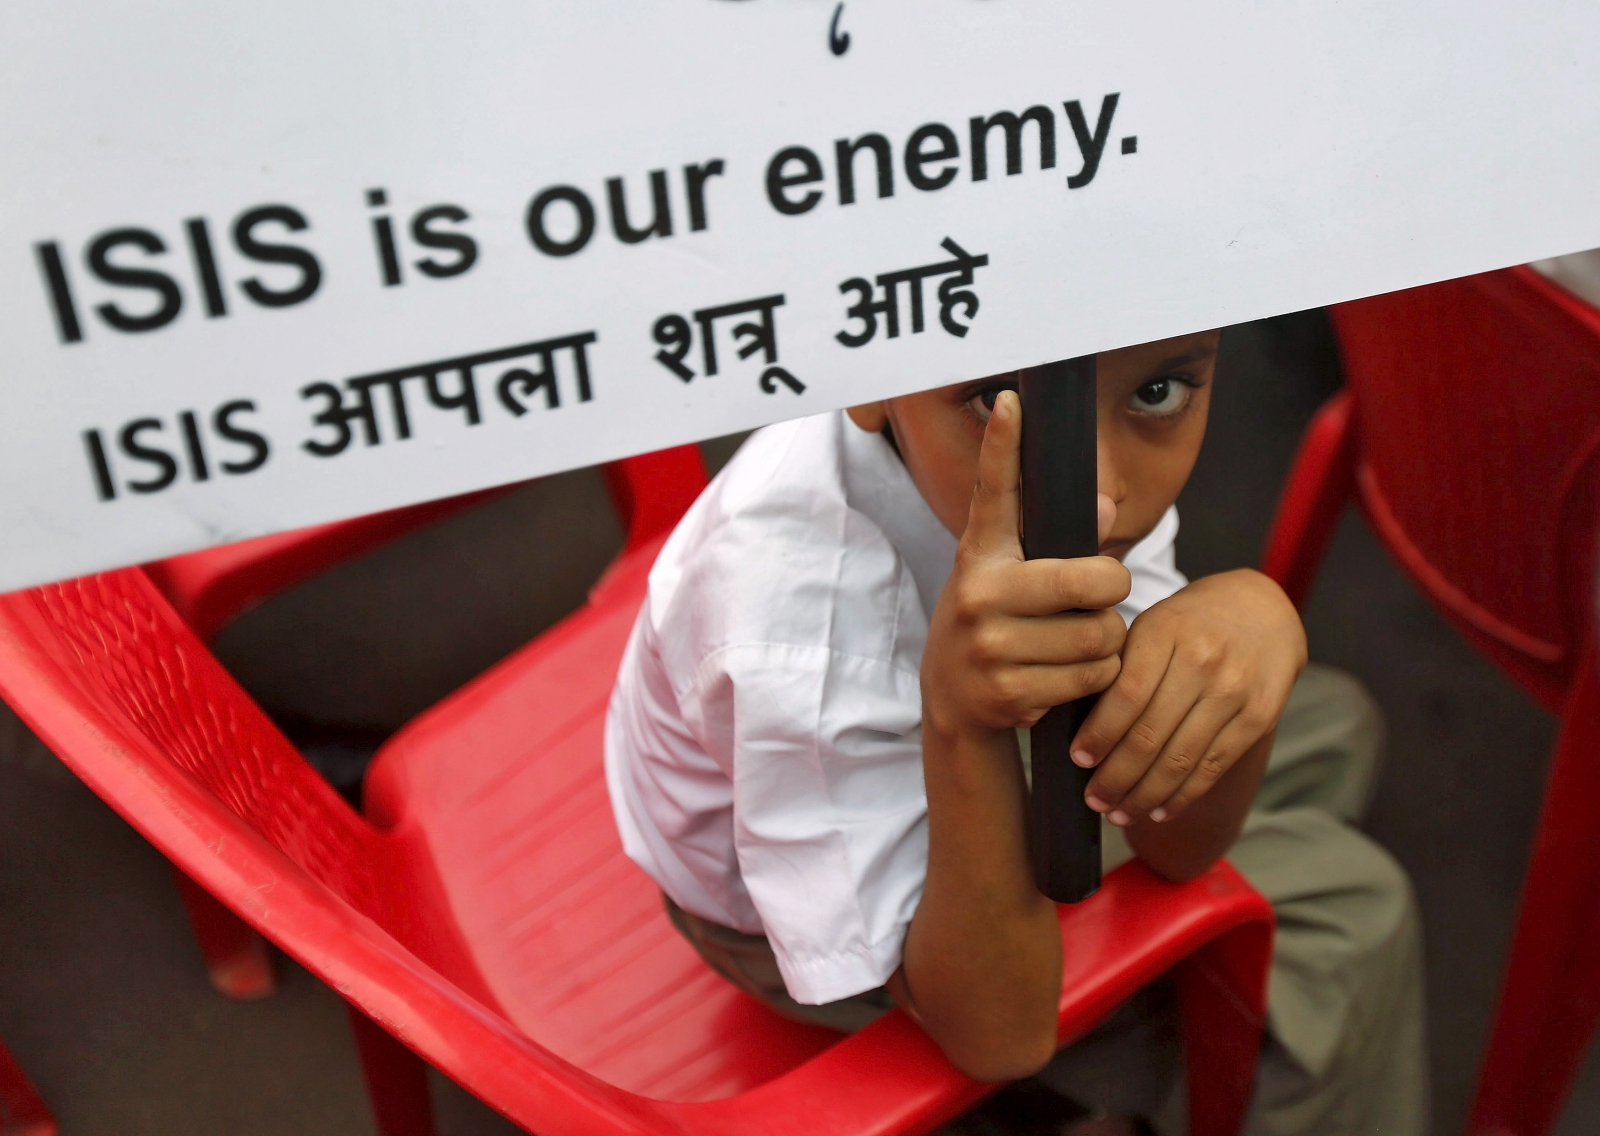 Isis in India